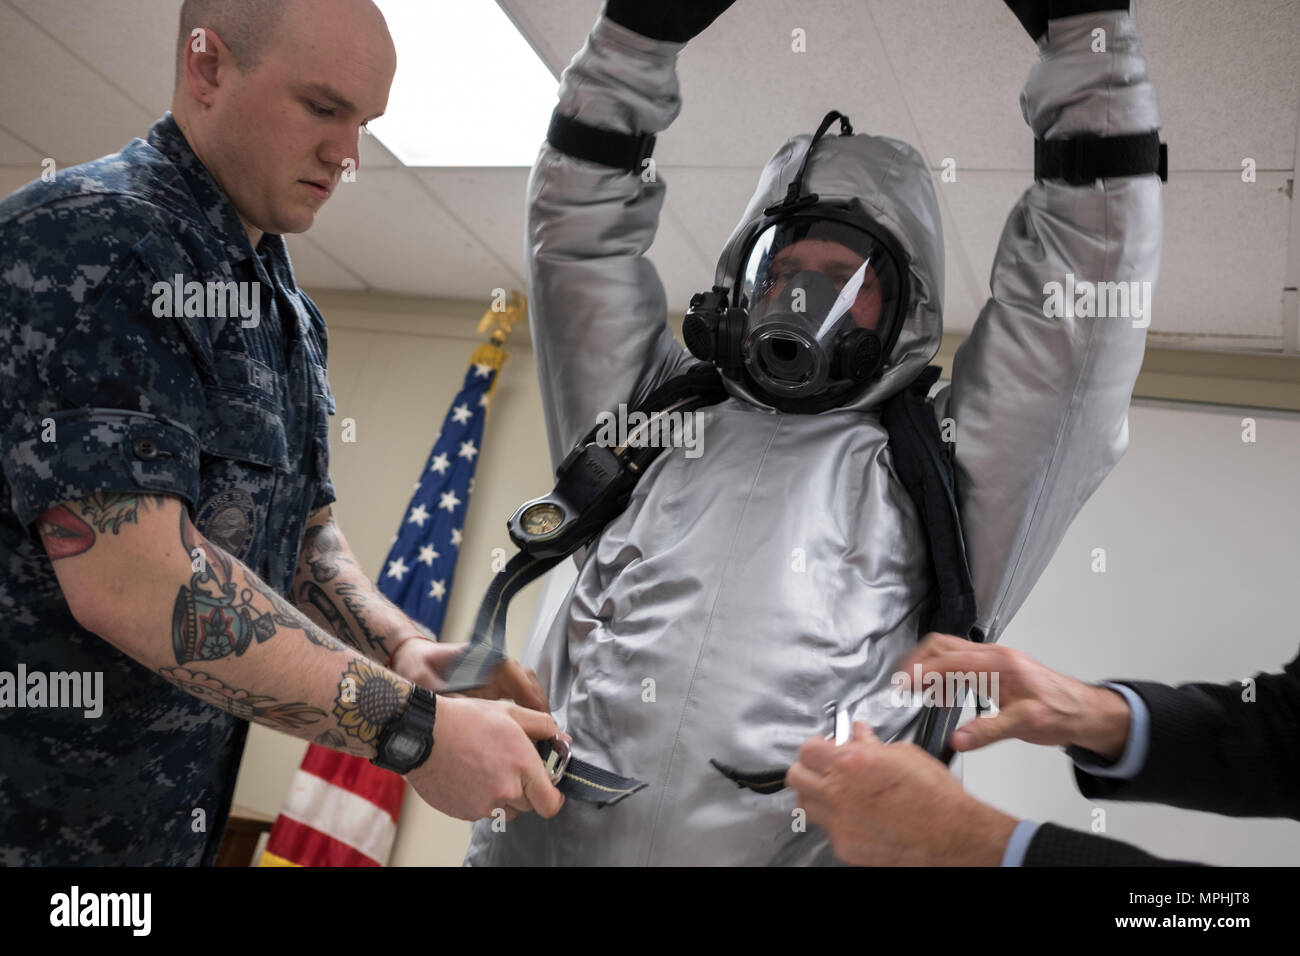 170308-N-PO203-139 GROTON, Conn. (Mar. 8, 2017) Machinist's Mate nuclear 2nd Class Nicholas Lewis from the Los Angeles class-attack submarine USS Toledo (SSN 769), helps Machinist's Mate nuclear 2nd Class Cameron Sebastian don a prototype submarine steam suit ensemble during an orientation class held at Naval Submarine Base New London. The Navy Sea Systems Command (NAVSEA) via the Office of Naval Research (ONR) TechSolutions Office has funded the Navy Clothing and Textile Research Facility (NCTRF) to develop the next generation of protective gear for emergency responders to steam line ruptures - Stock Image